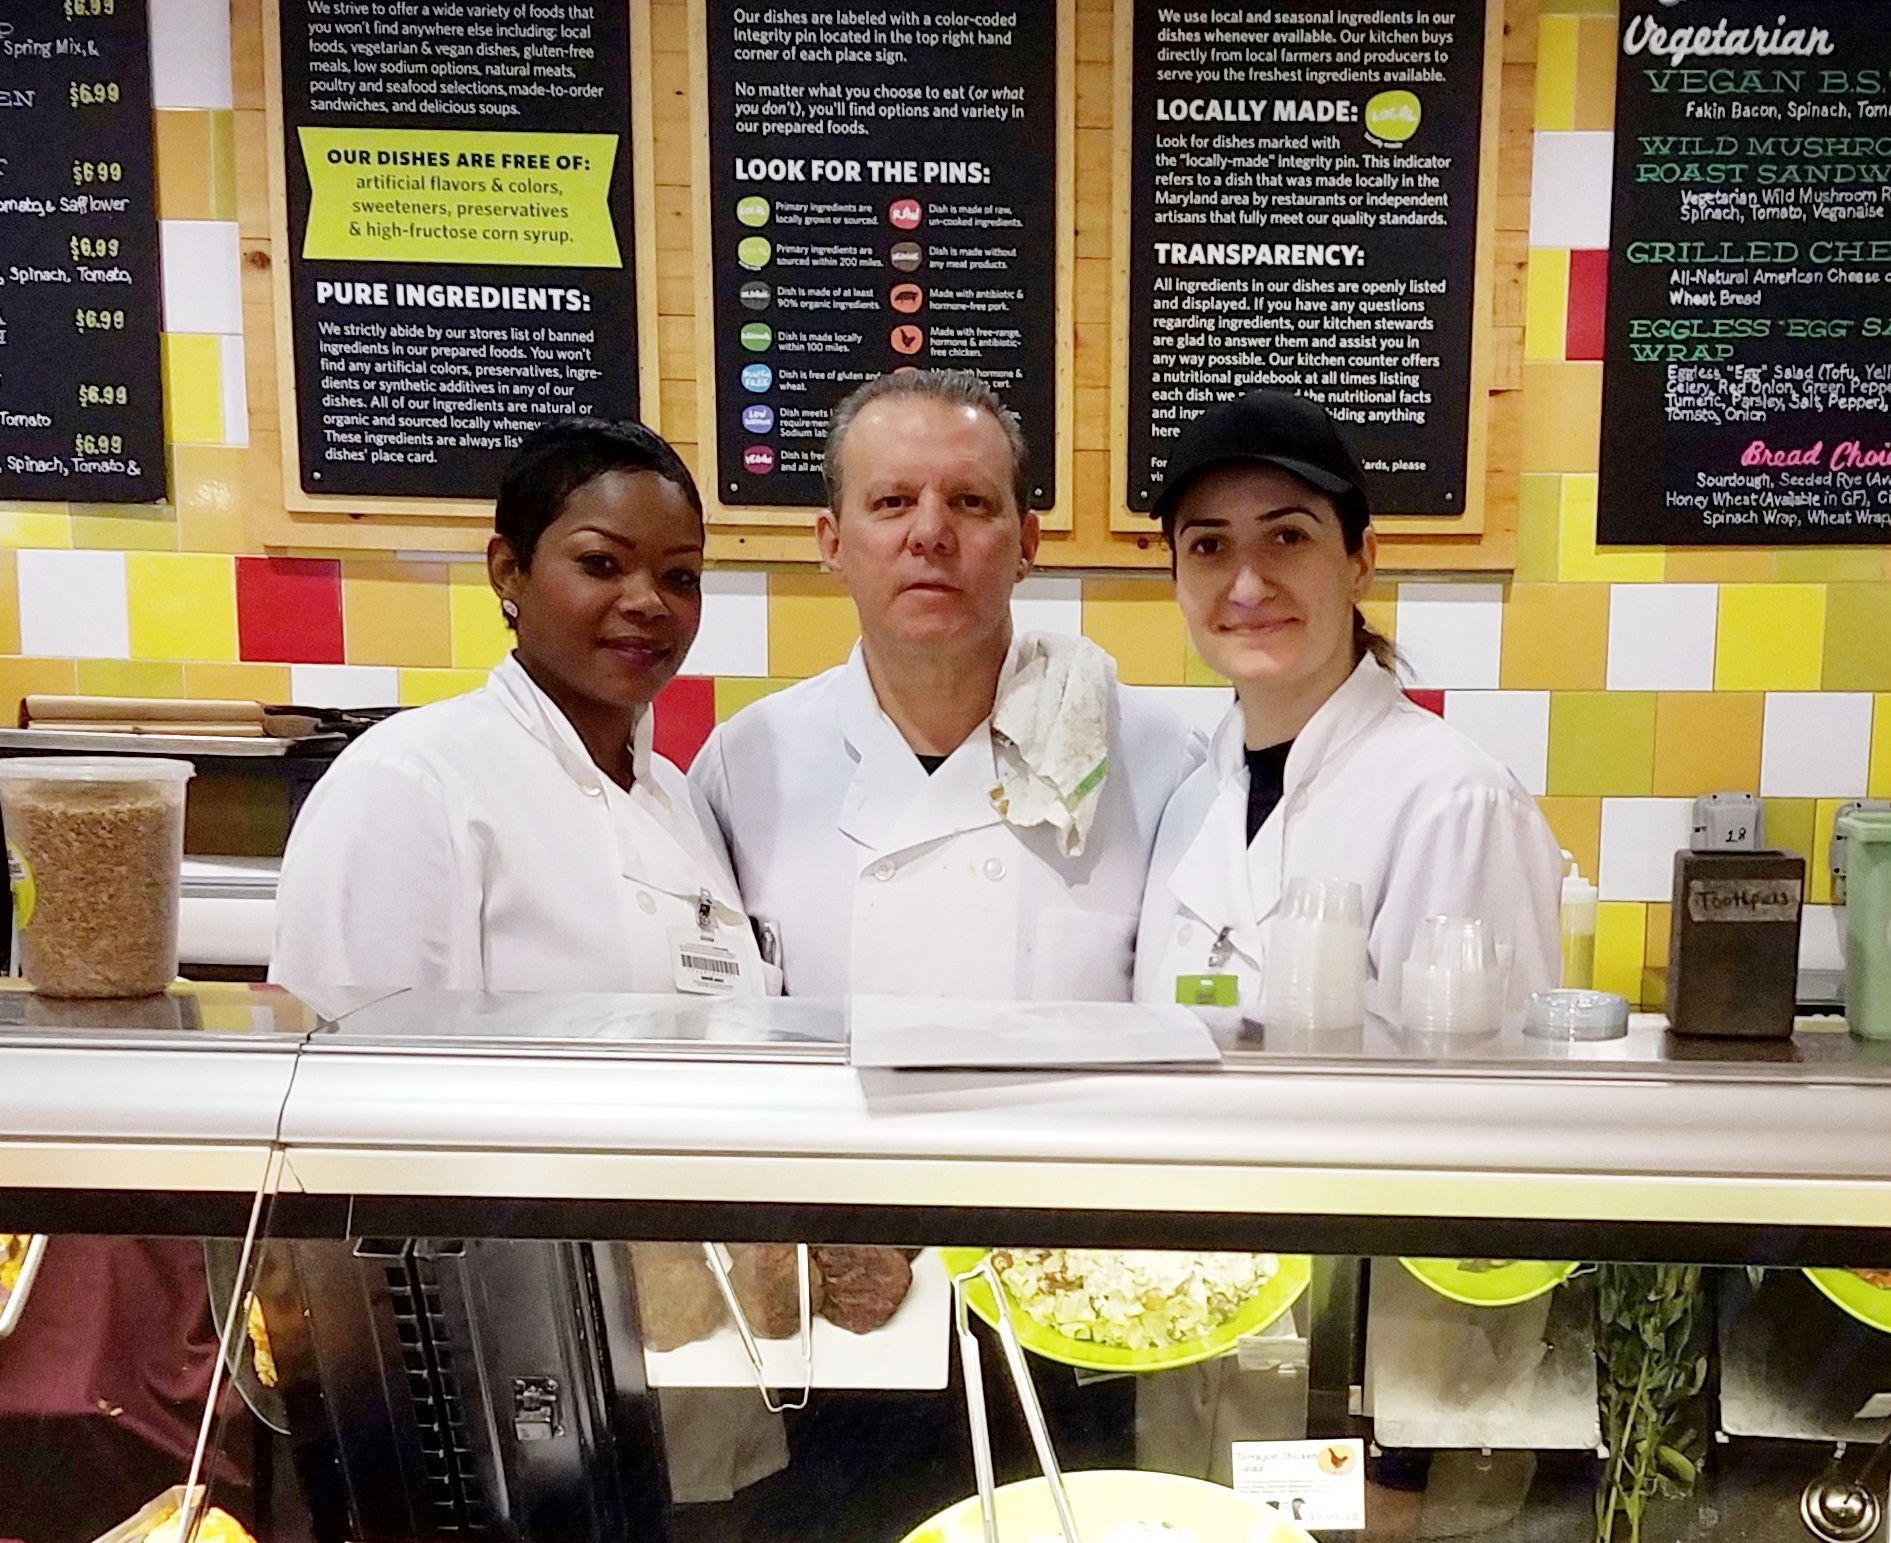 Dawson's kitchen team is ready for you. From left, Natalie Walker, Executive Chef Rich Stafford, and Marina Gagikyan.